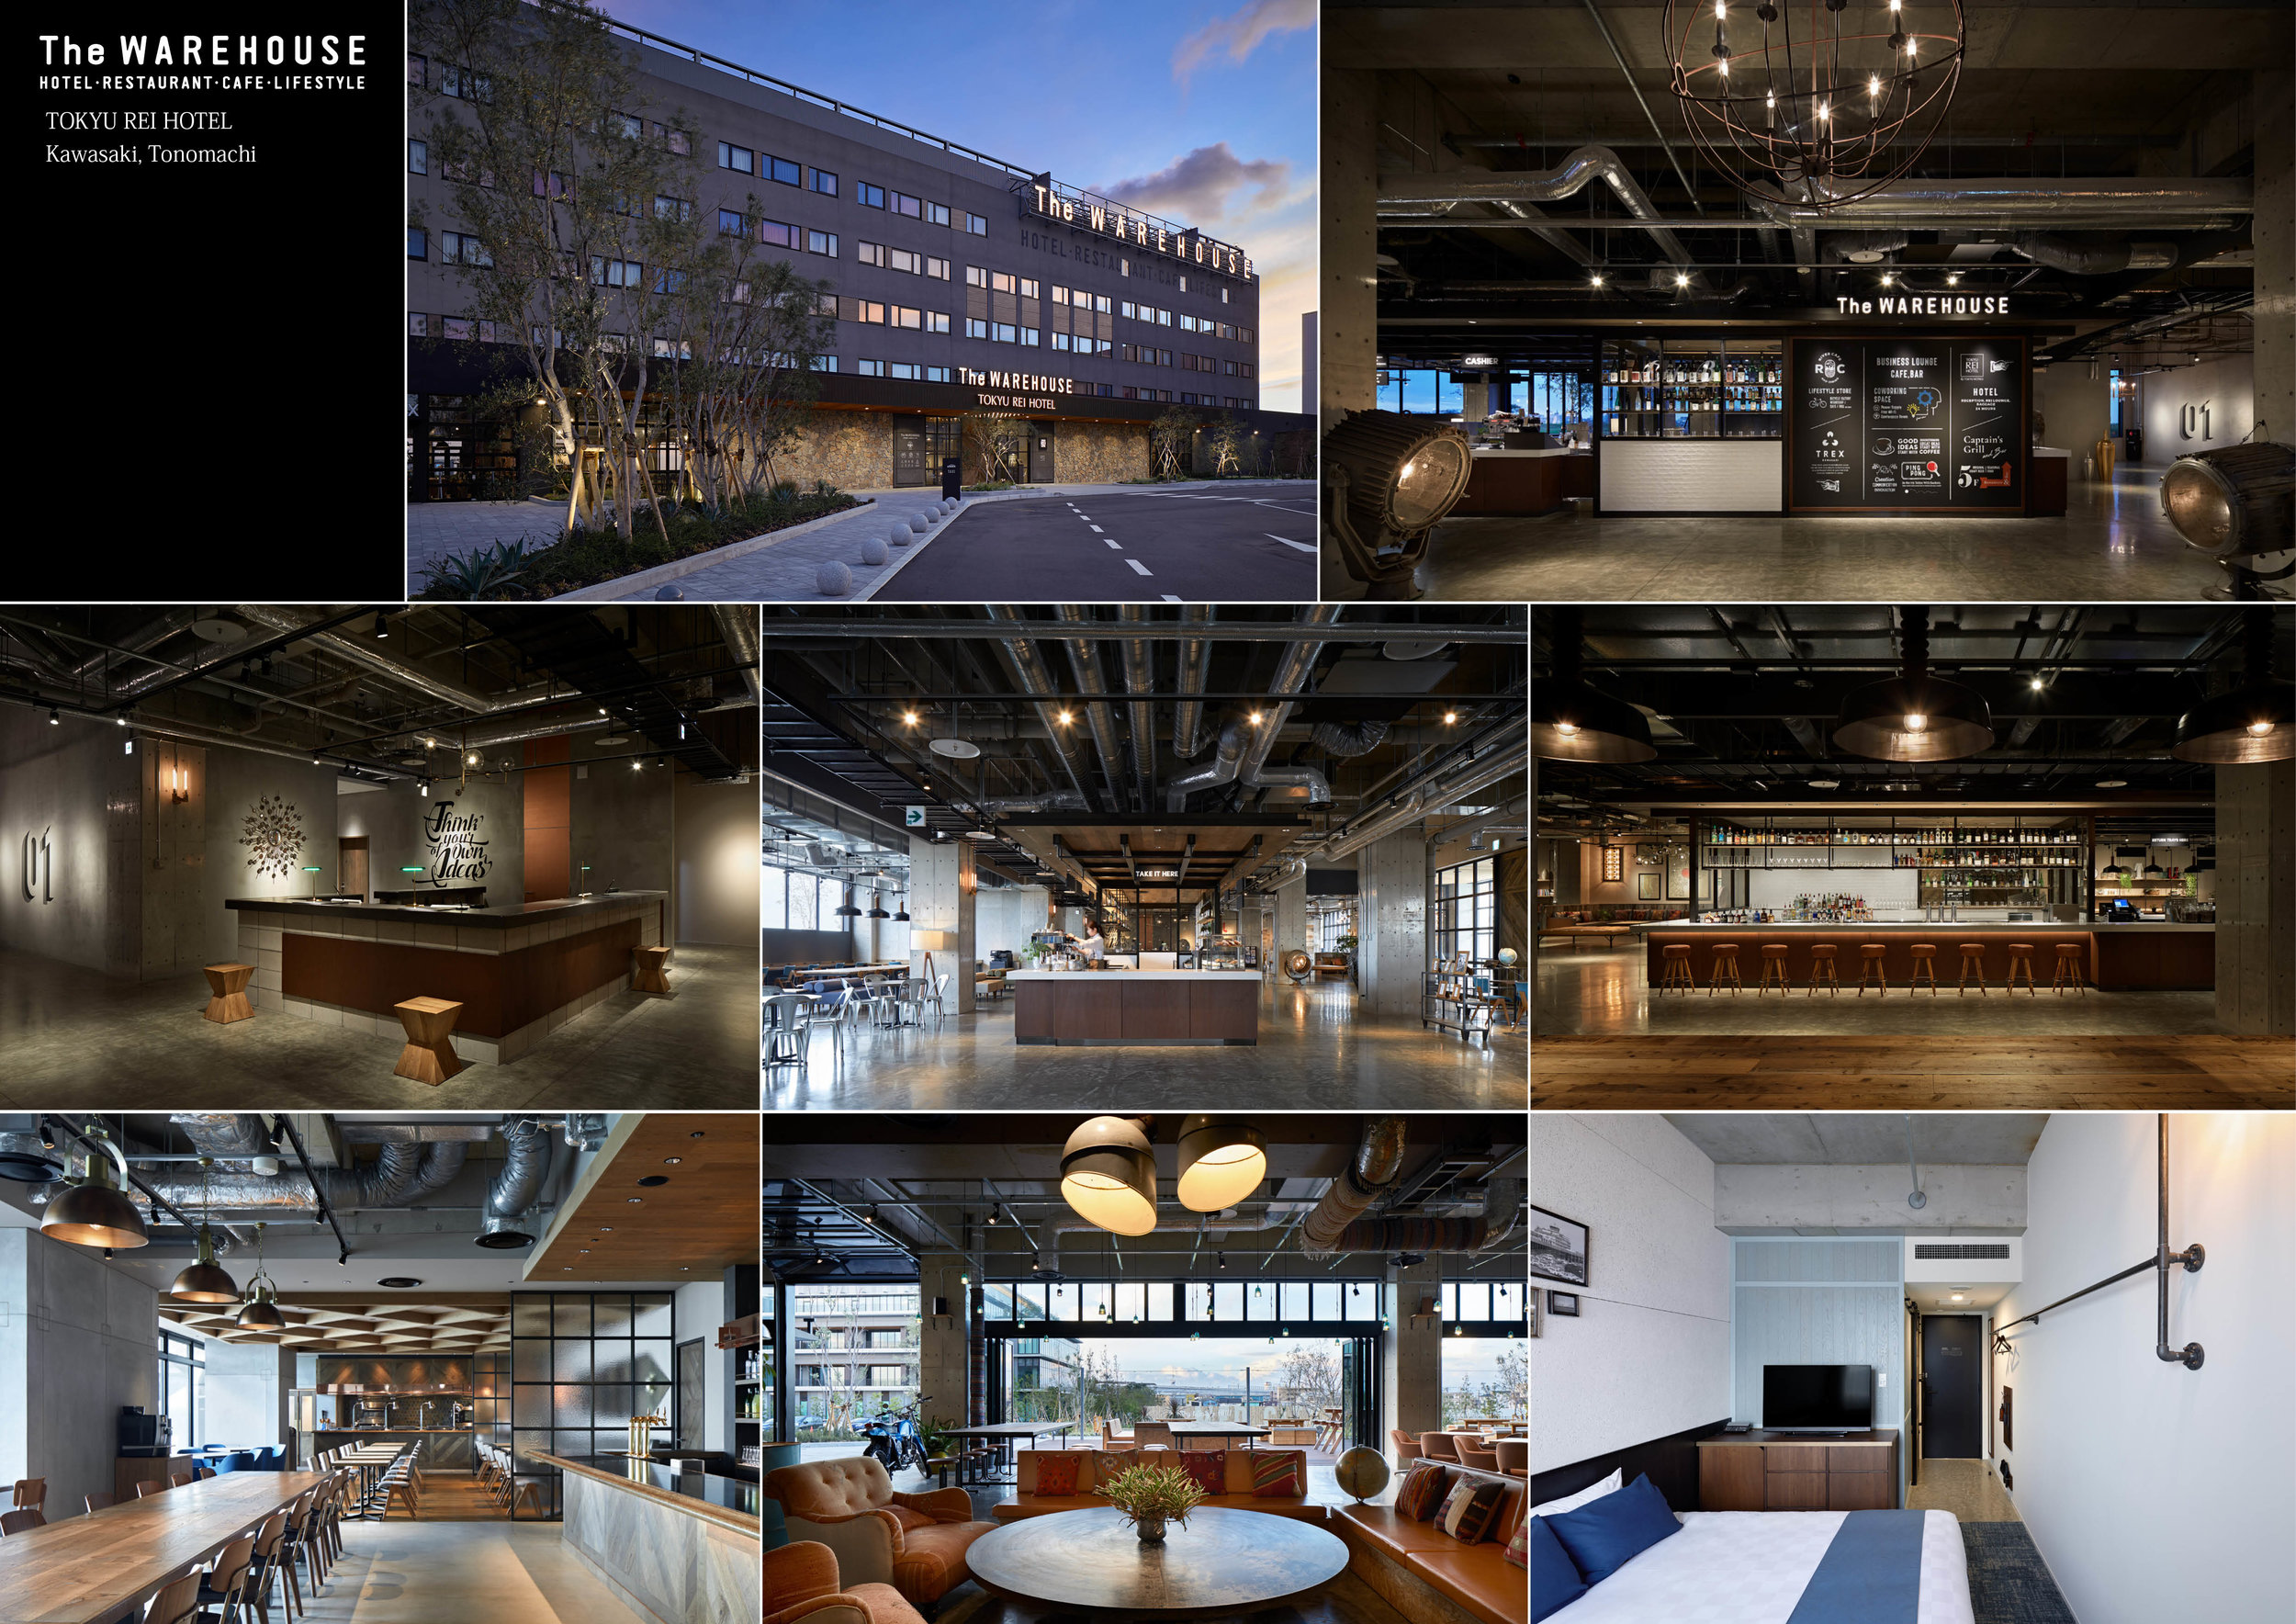 The WAREHOUSE - Design by: Kubota Architects & Associates Inc.Interior Division: Hotel & ResortWebsite: https://www.ka-a.co.jp